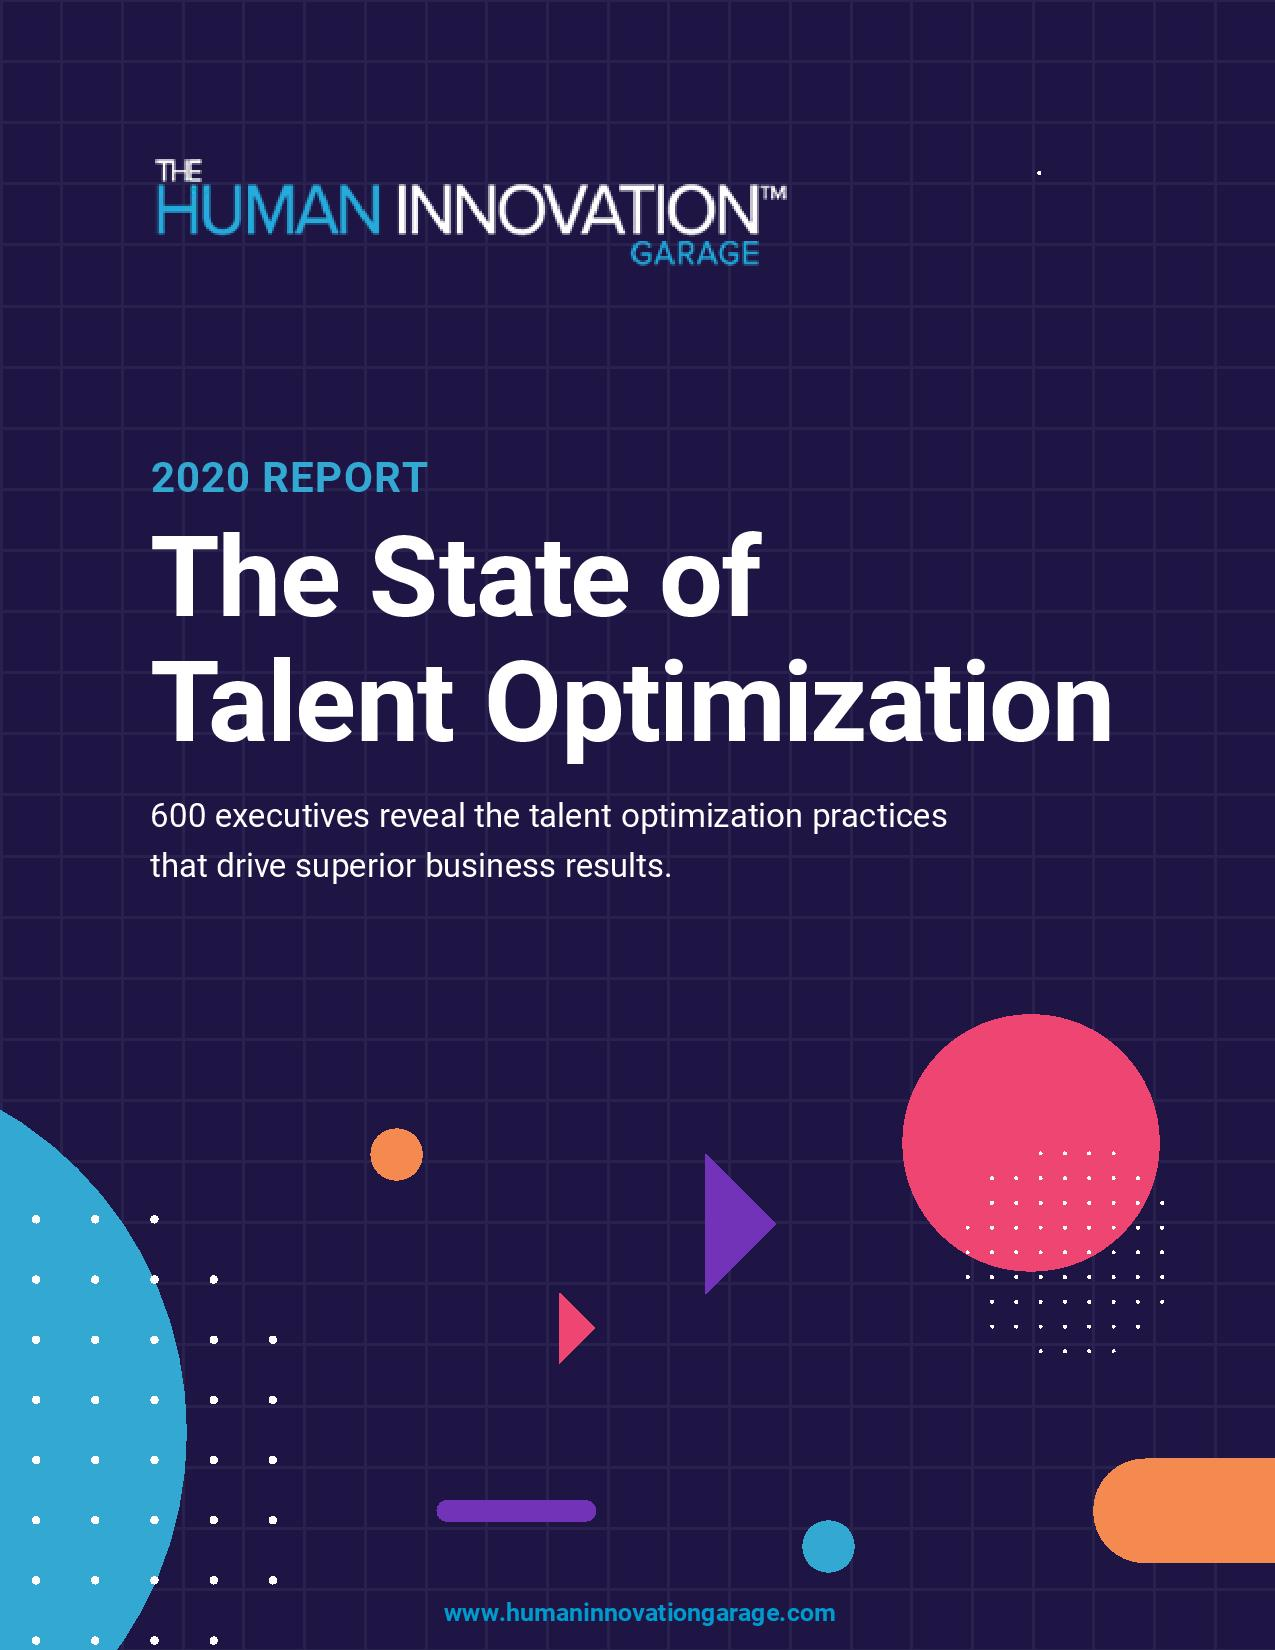 2020 Report: The <br> State of <br>Talent Optimization